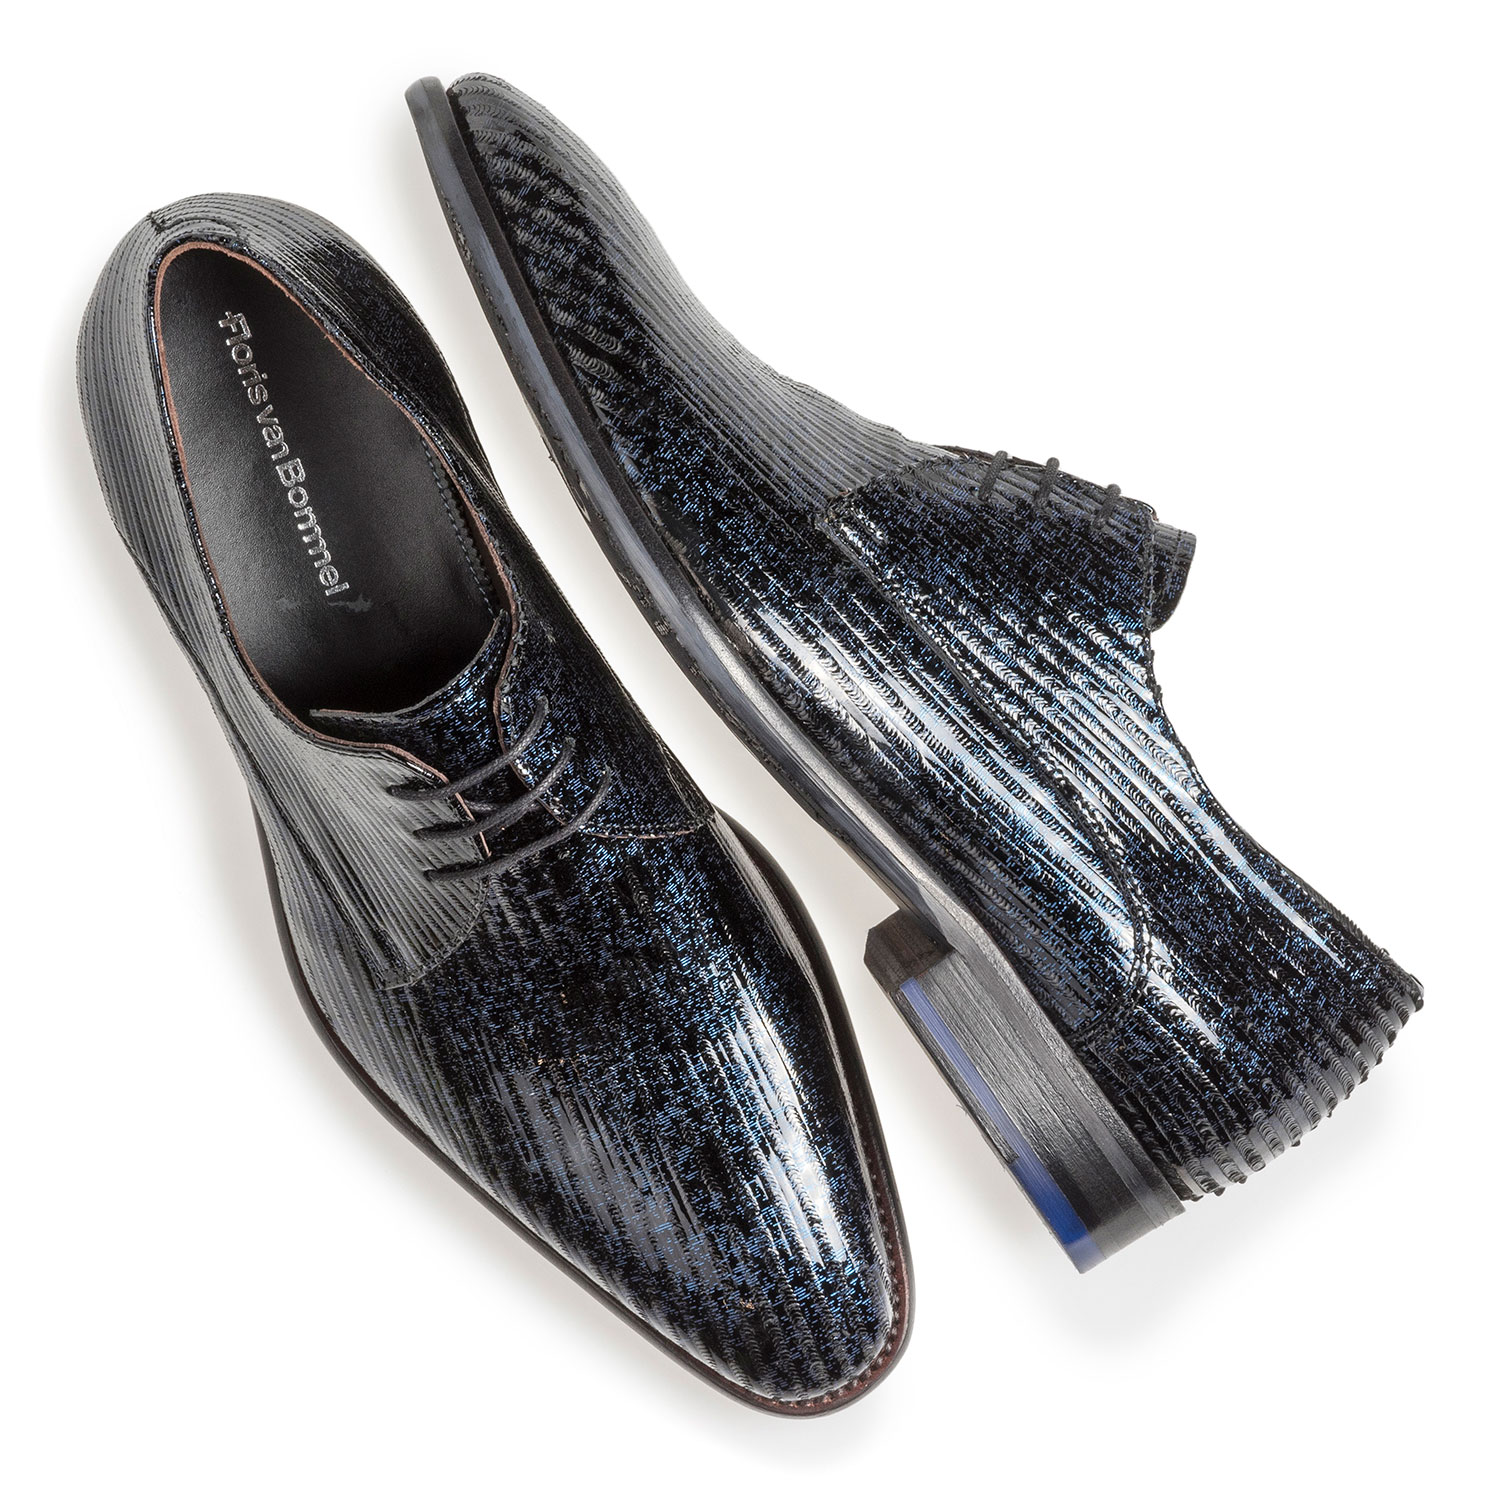 18146/10 - Blue patent leather lace shoe with print